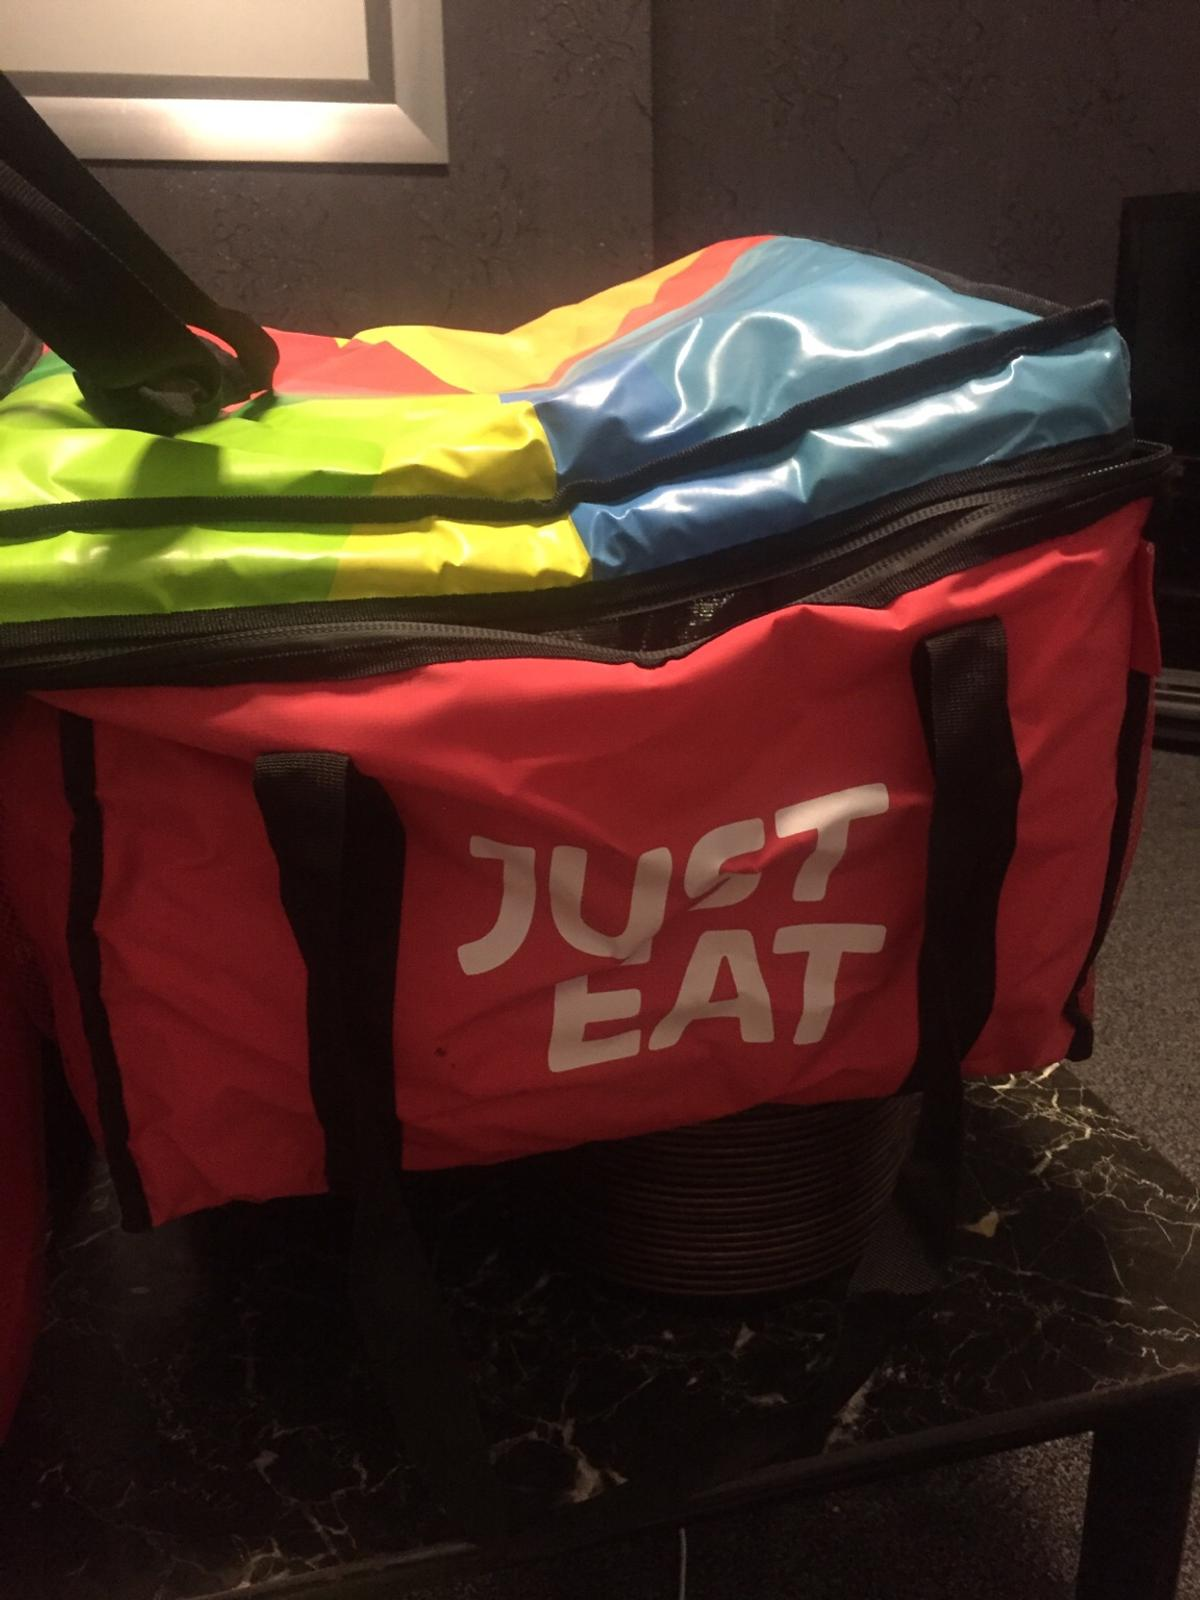 Justeats Pizza Delivery Bags